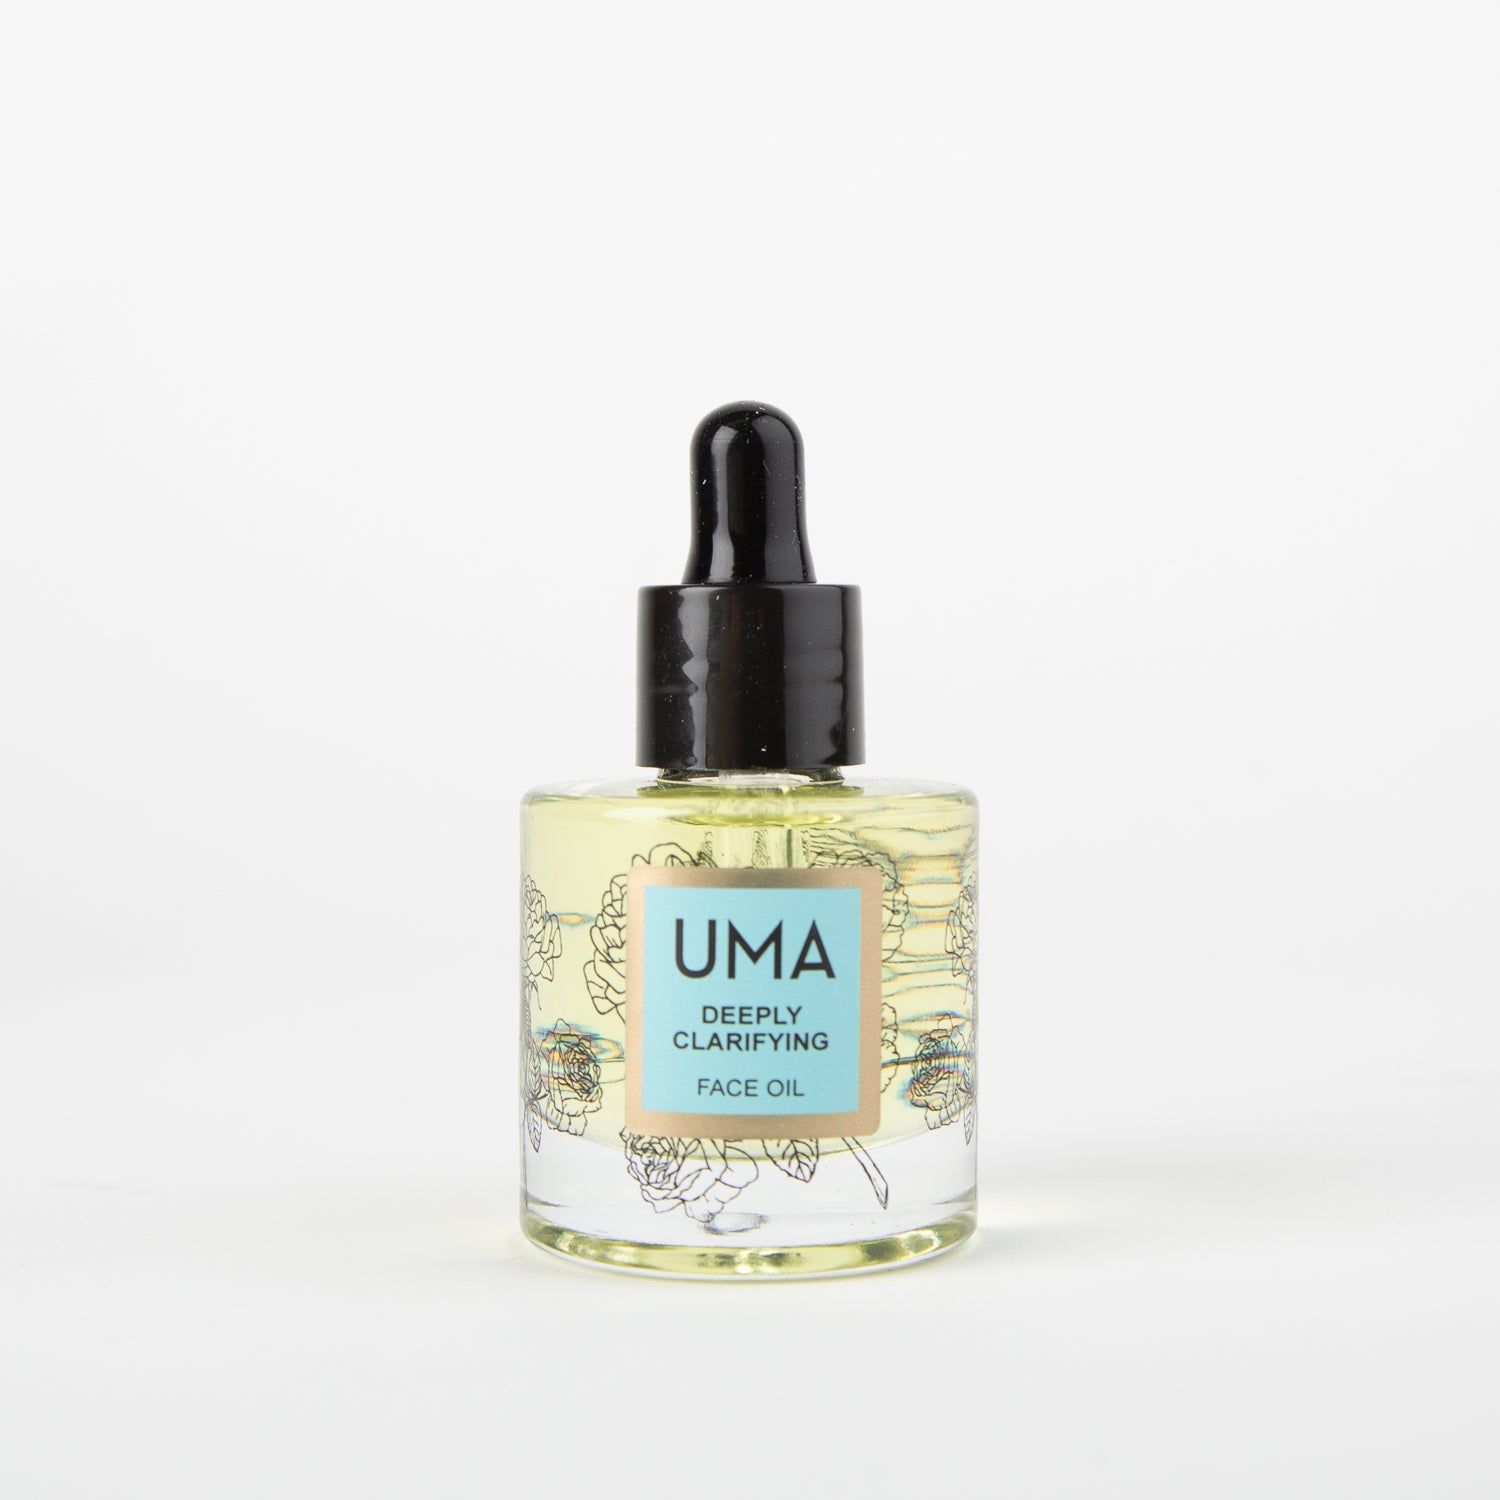 deeply clarifying face oil by UMA oils at Secret Location Concept Store